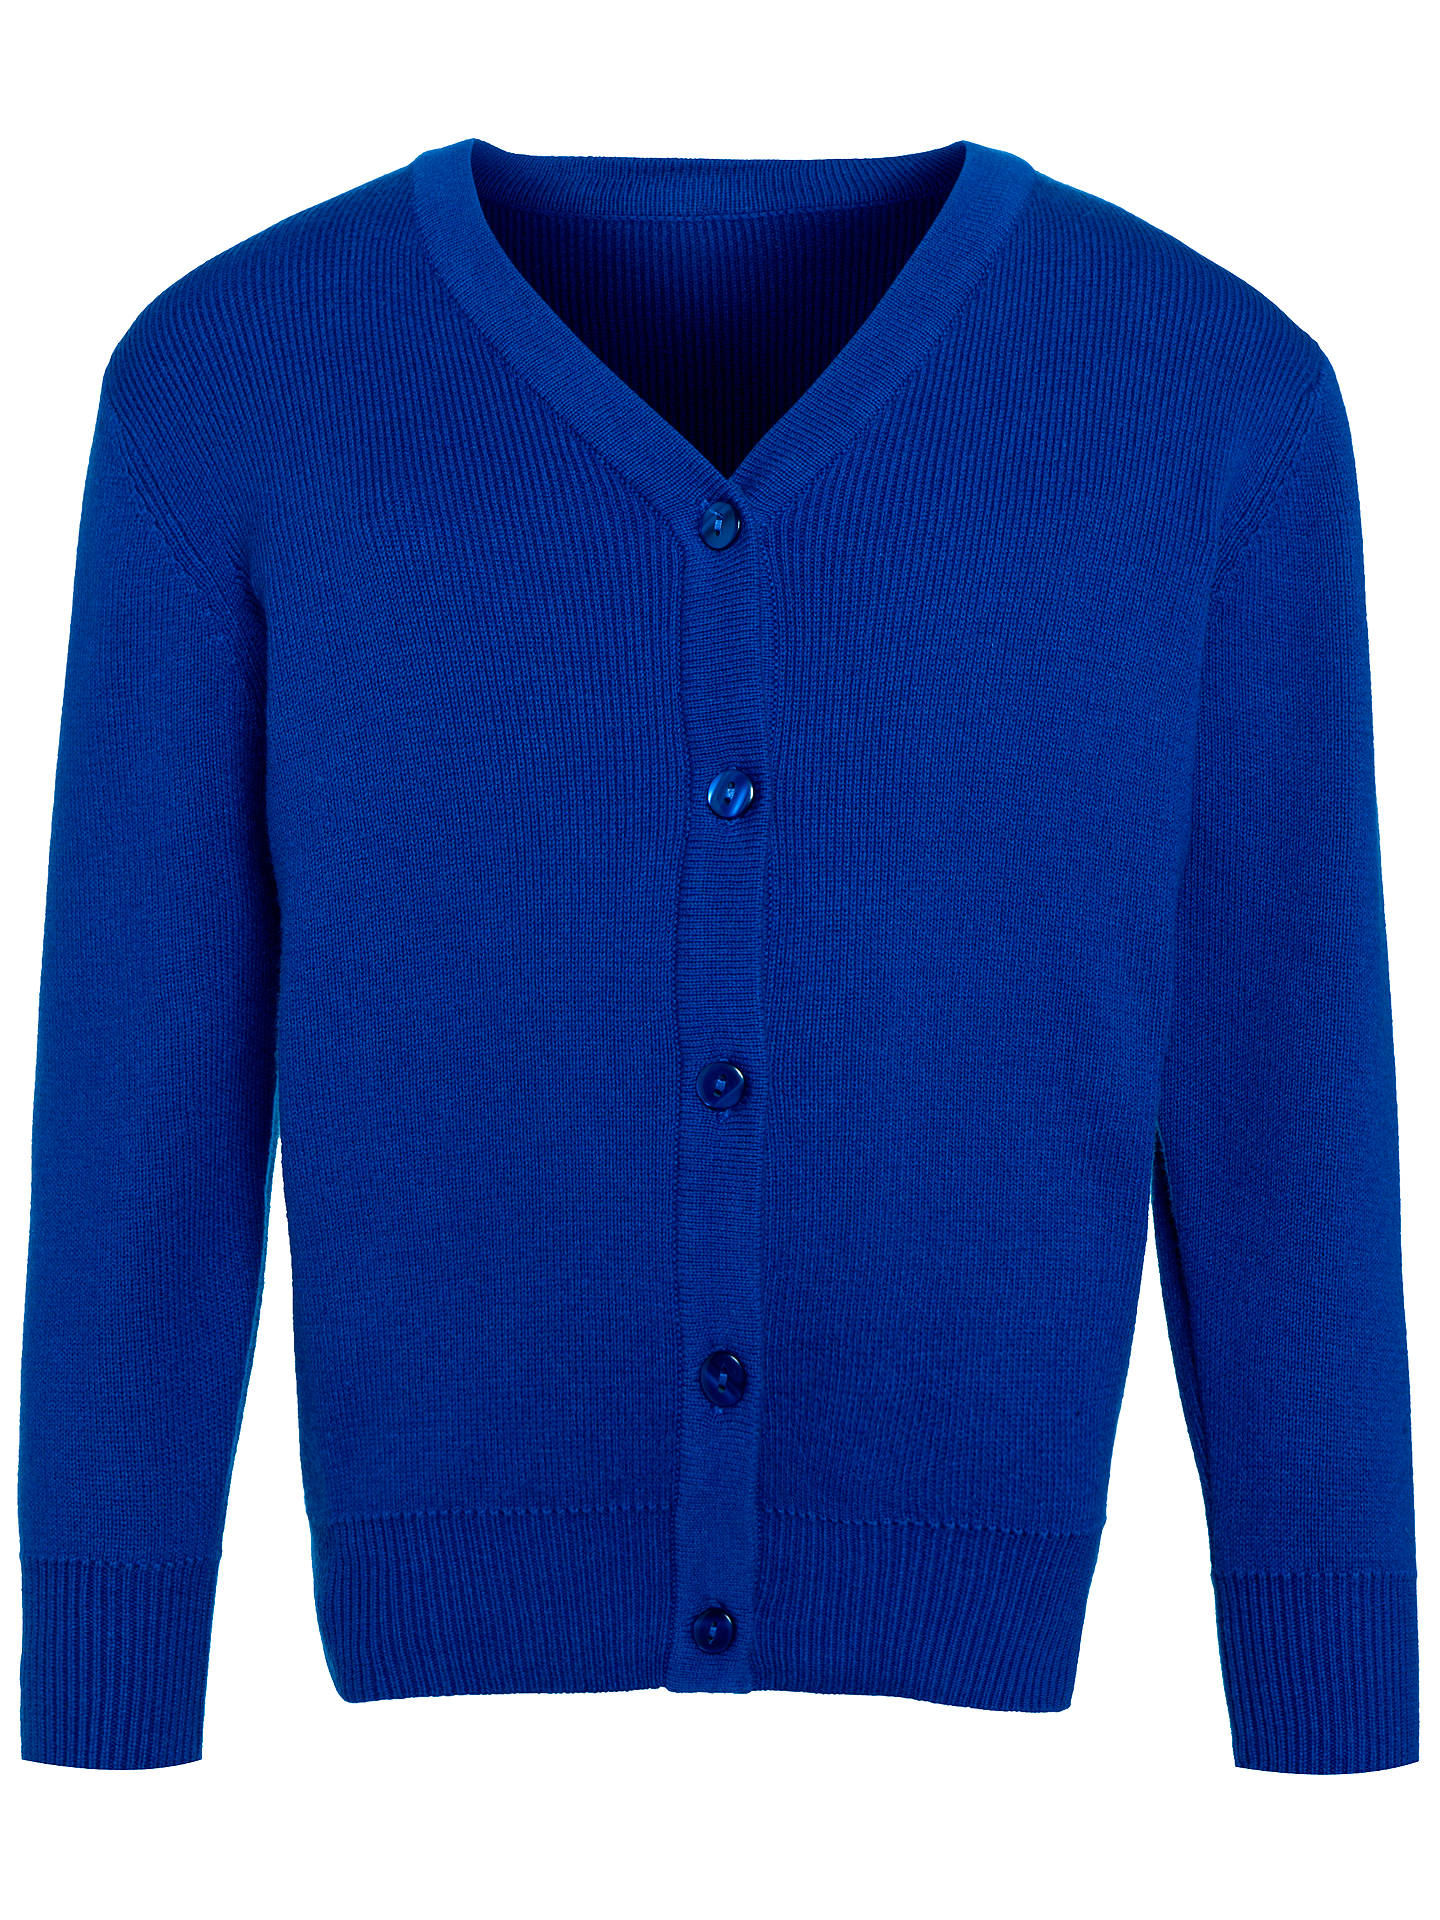 BuyJohn Lewis & Partners School 100% Pure Cotton V-Neck Cardigan, Royal Blue, 15-16 years Online at johnlewis.com